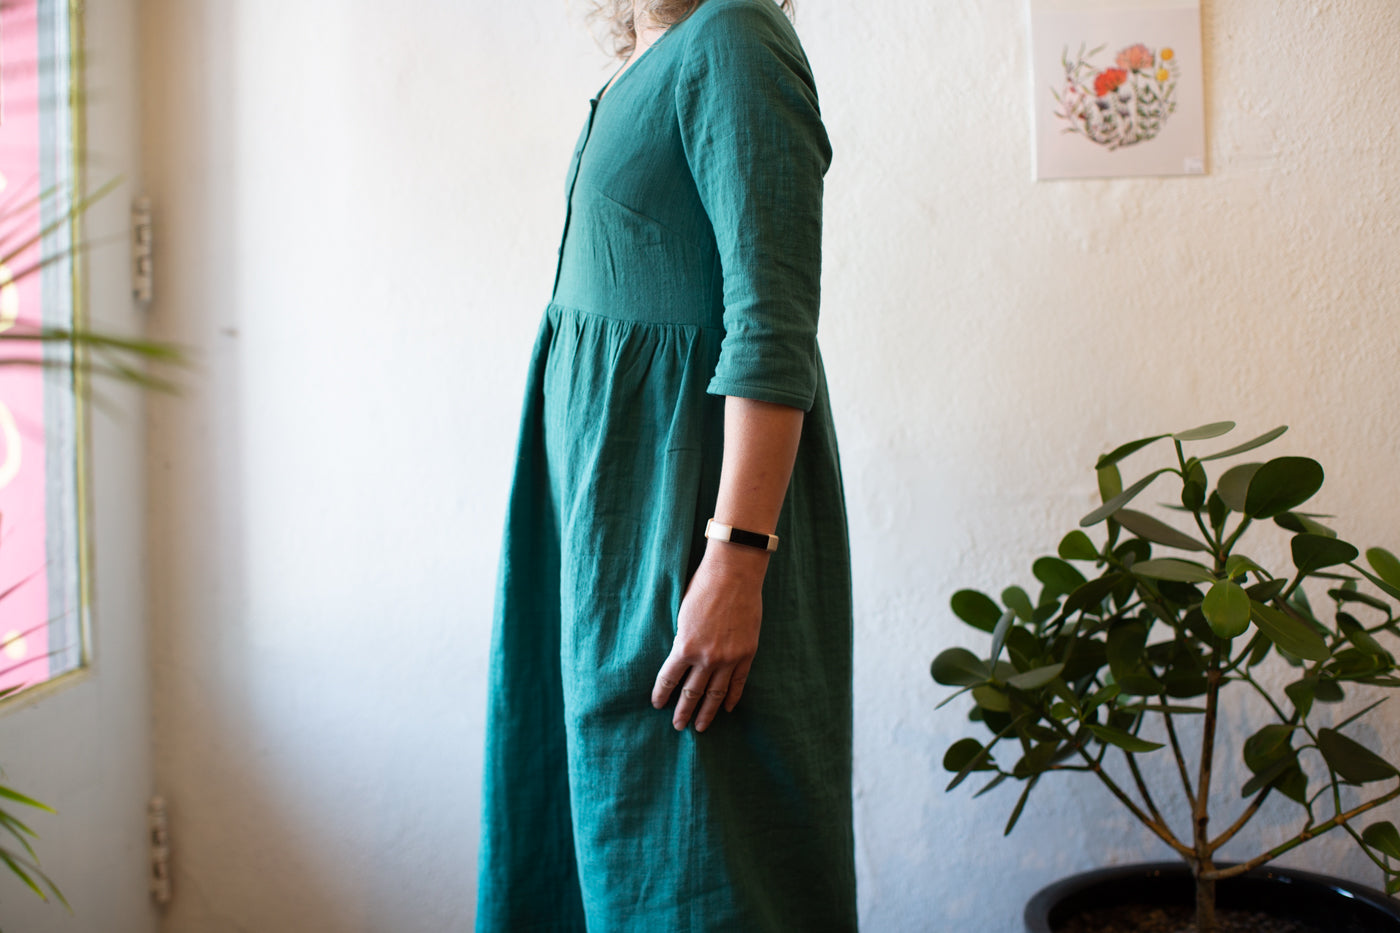 Jaime is wearing a spruce linen dress.  Facing towards a store front door with glass.  Photograph is focusing on showing the sleeve and pocket detail.  Photograph is from the side.